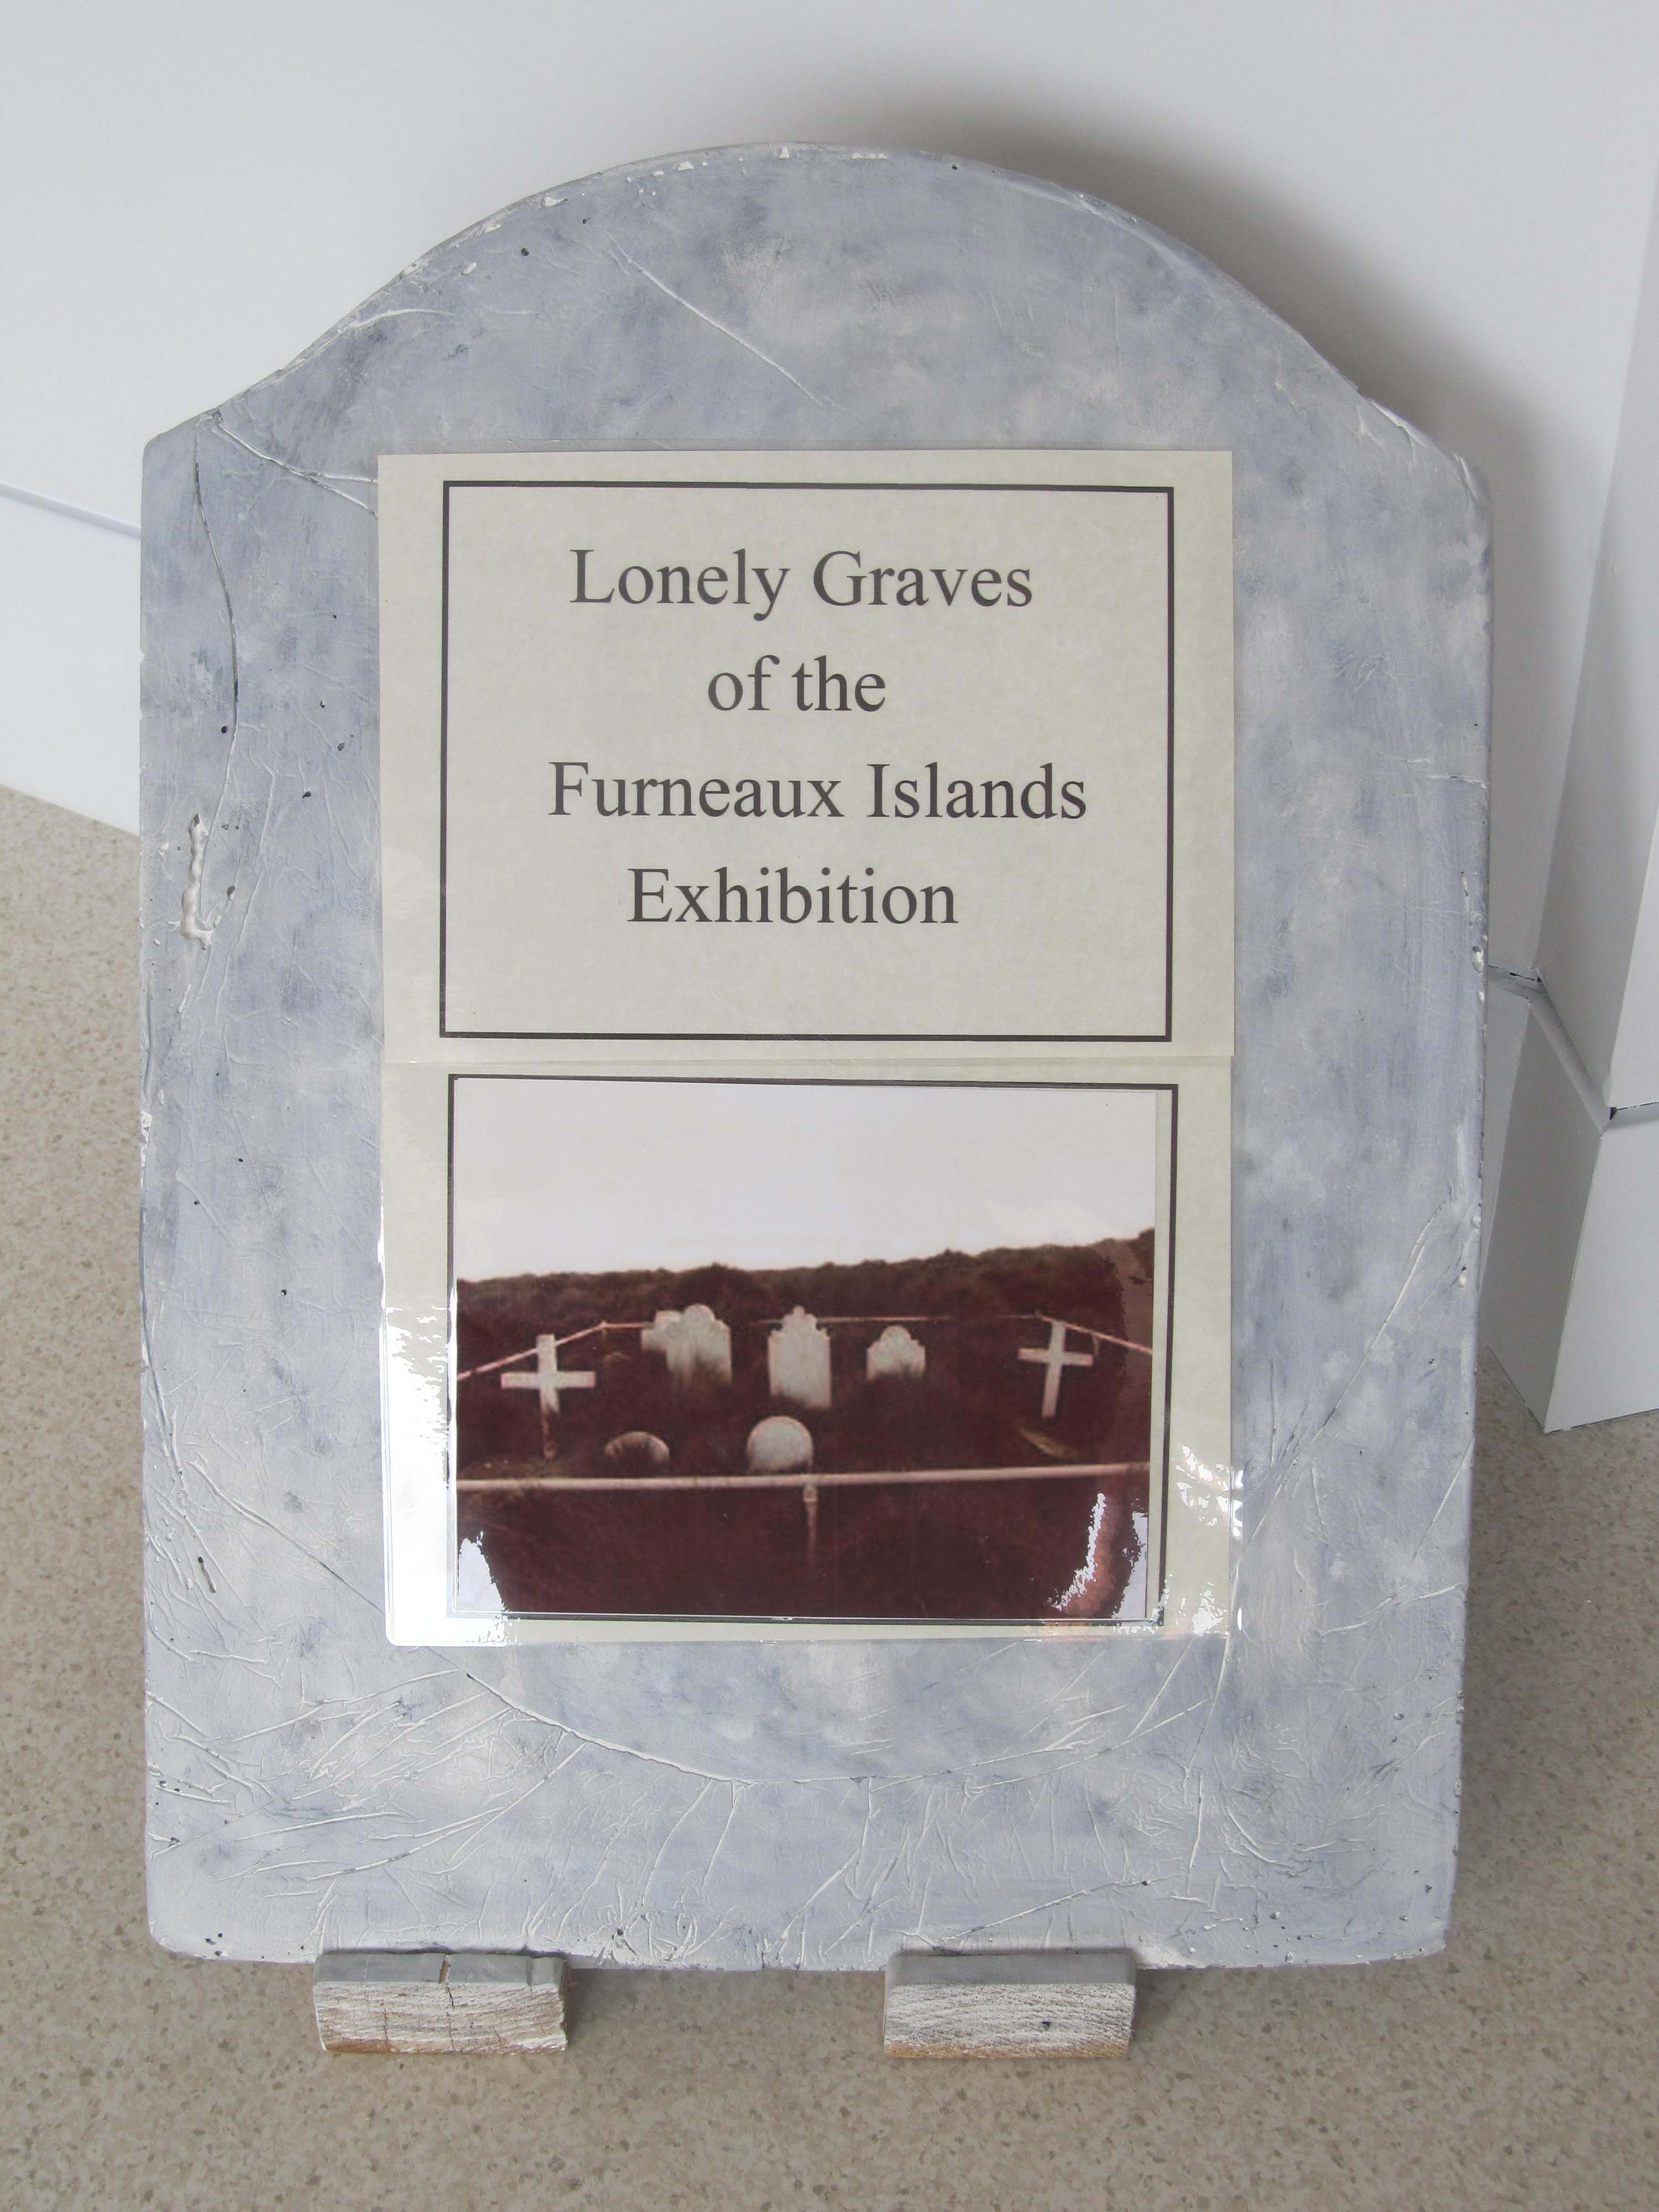 Lonely Graves of the Furneaux Islands Exhibition - Accommodation Tasmania